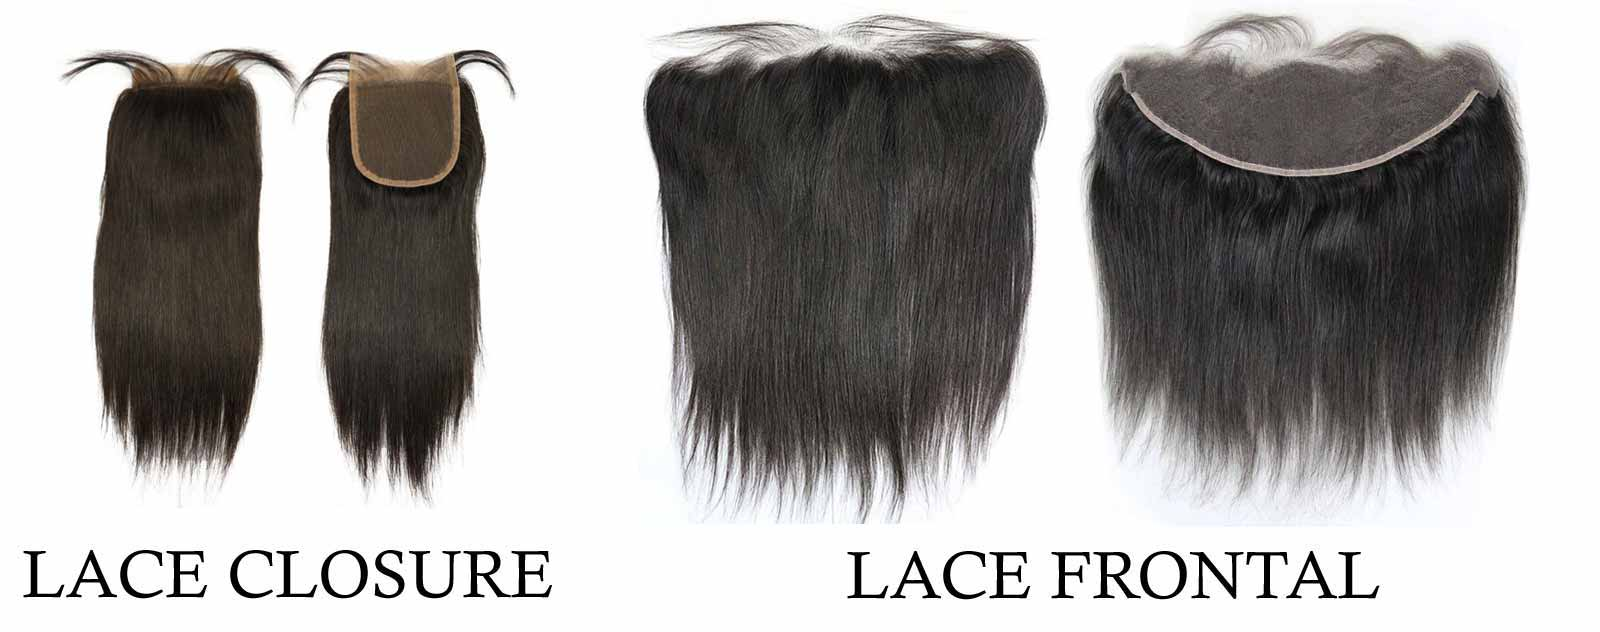 Lace Closure vs Lace Frontal